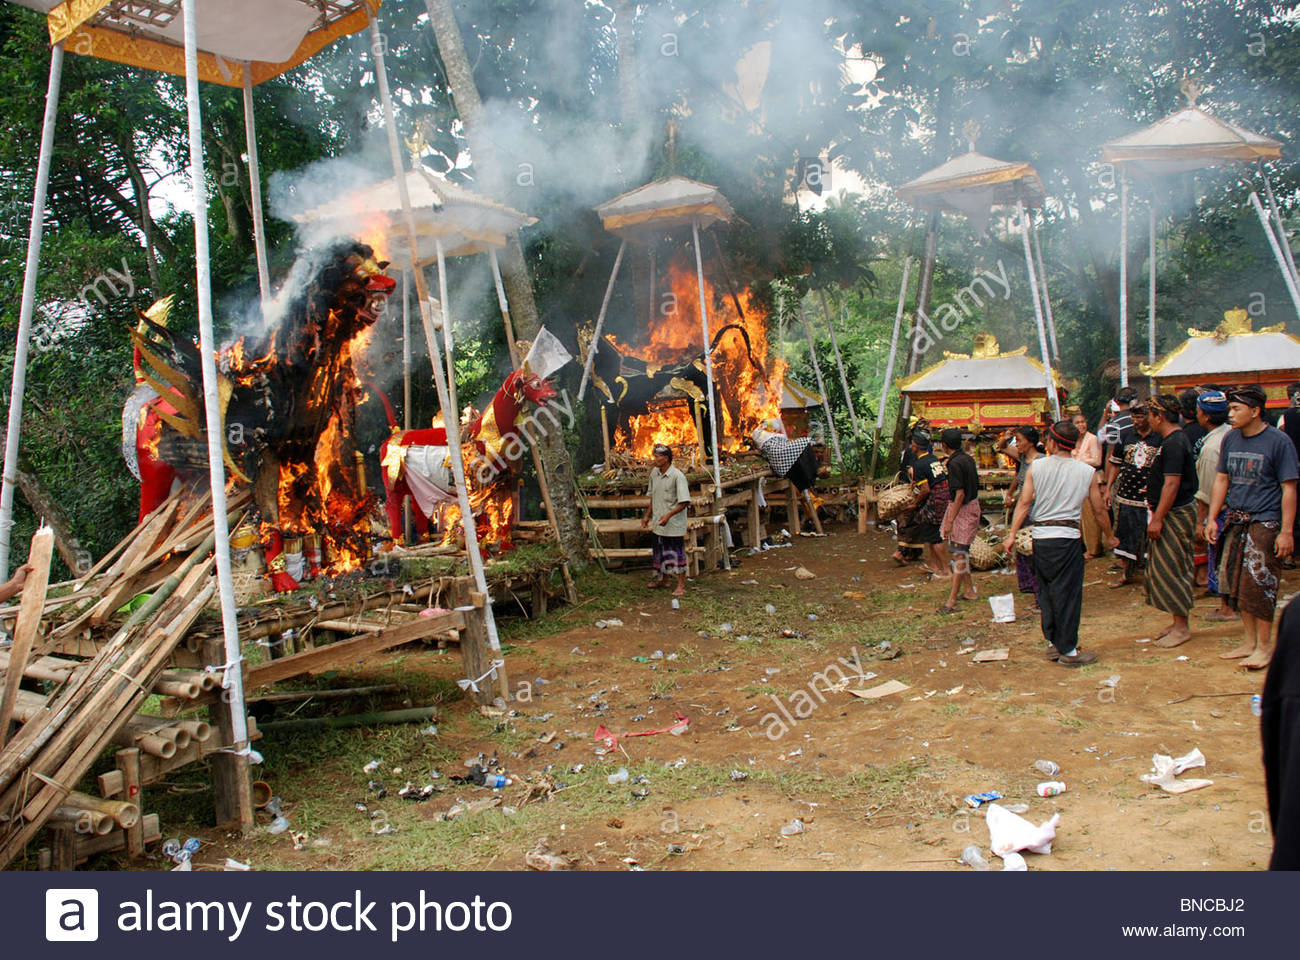 Ornate coffins in the form of animals blaze in mass Hindu cremation ceremony Bangli Bali Indonesia - Stock Image